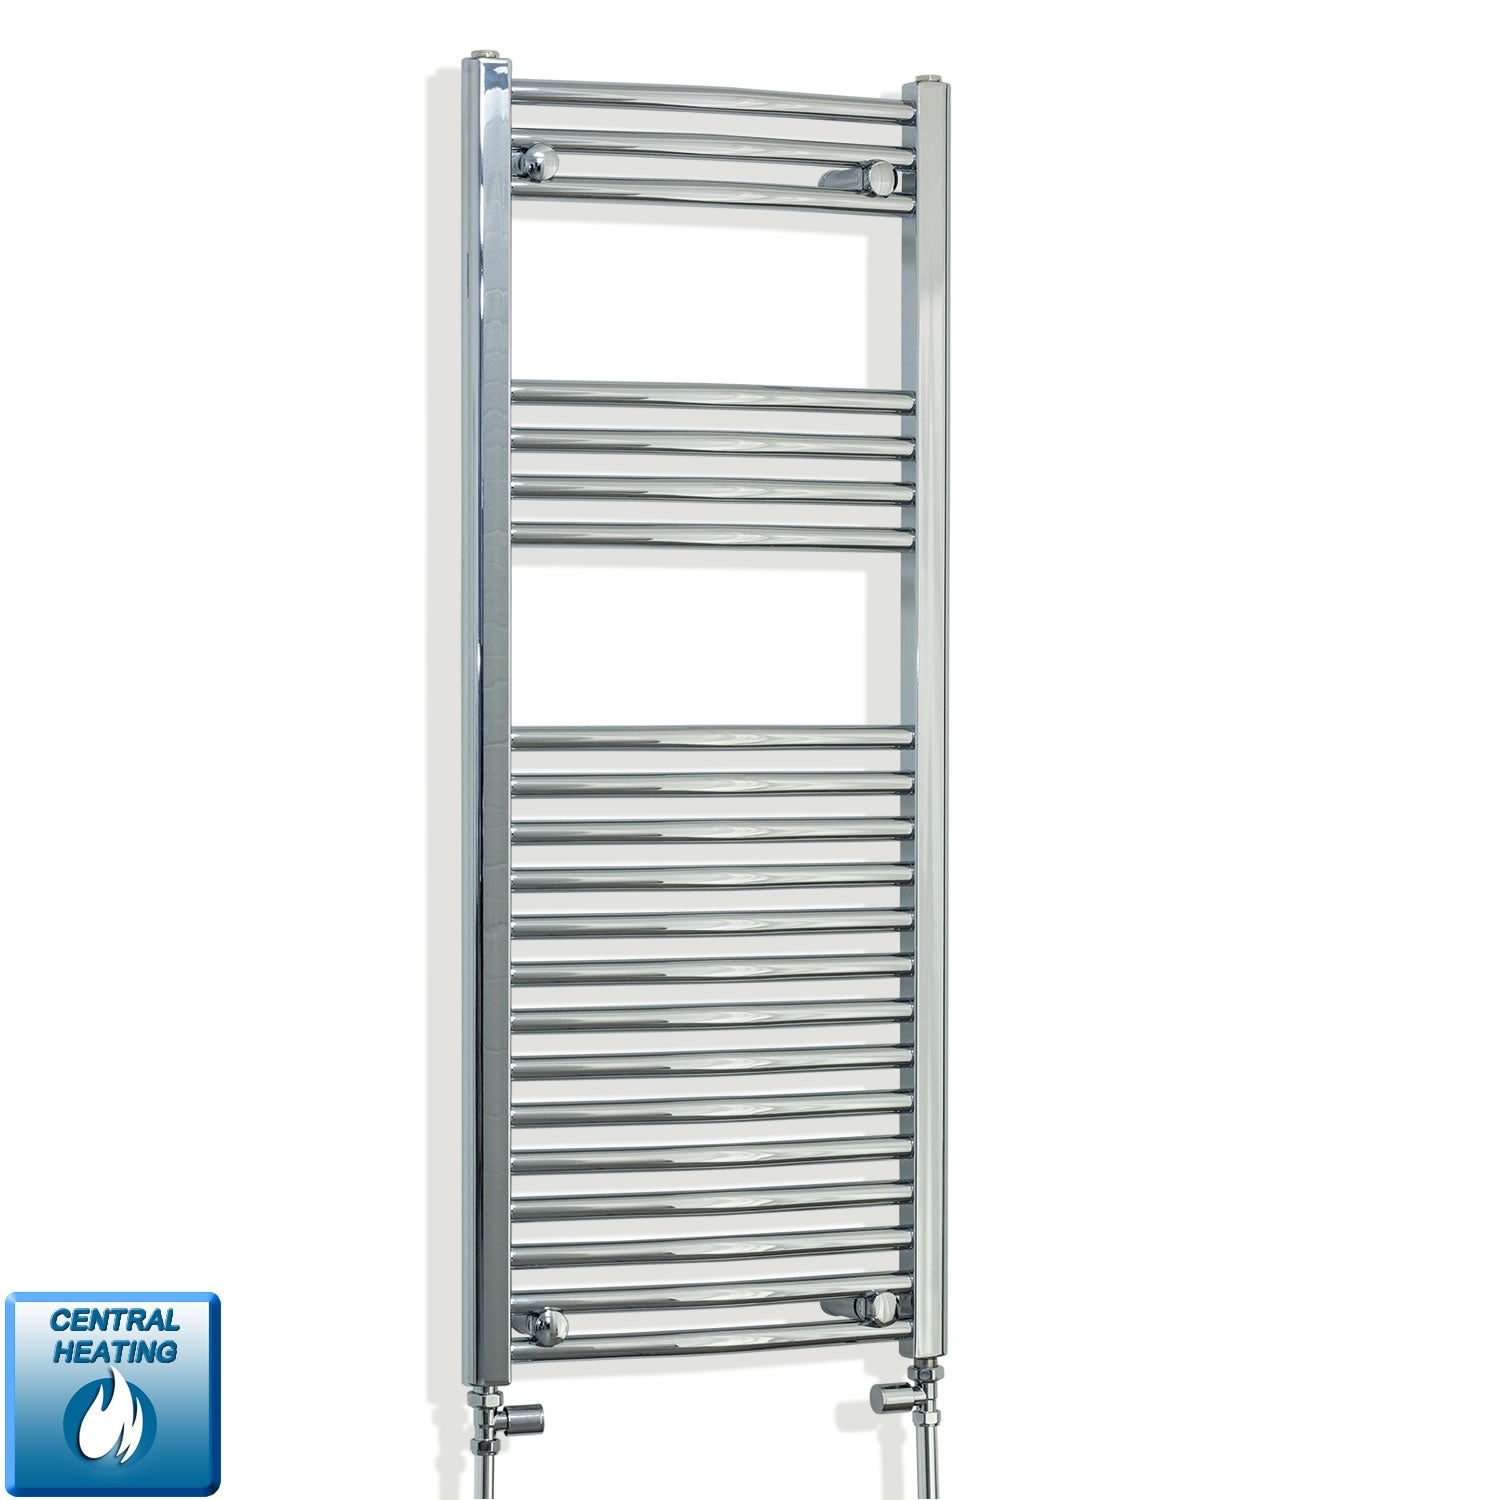 450mm Wide 1100mm High Curved Chrome Heated Towel Rail Radiator HTR,With Straight Valve